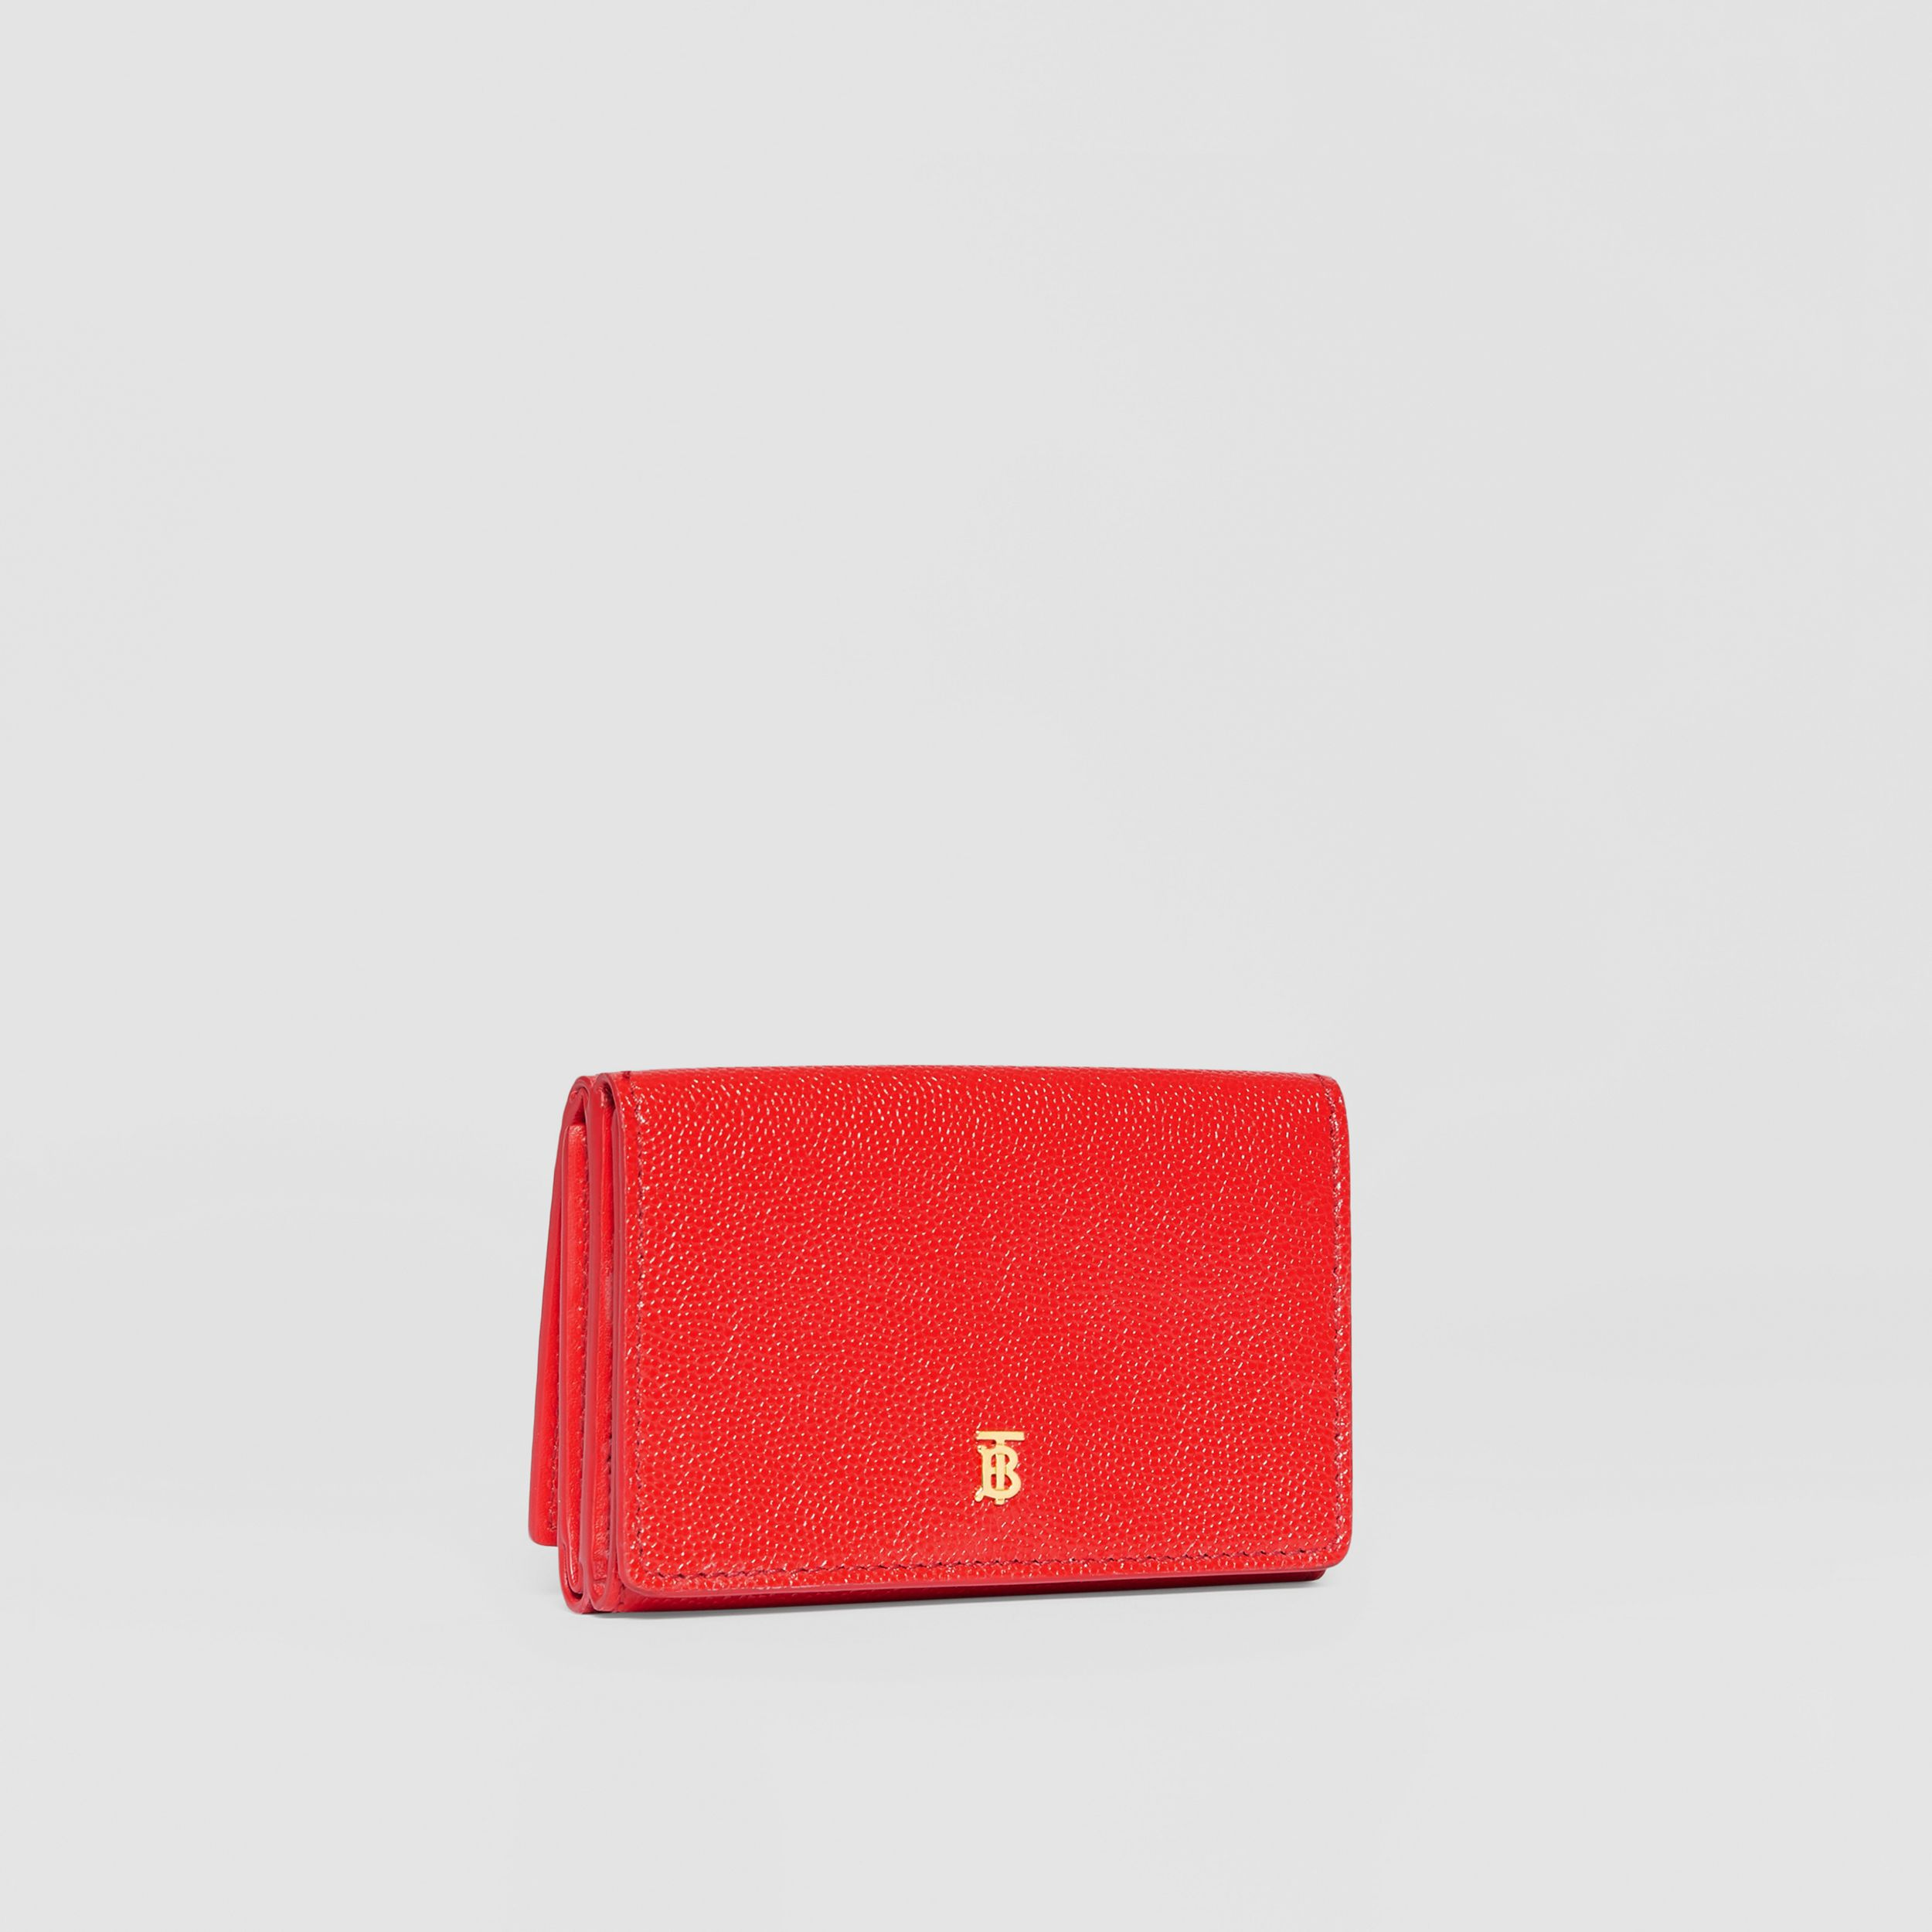 Small Grainy Leather Folding Wallet in Bright Red - Women | Burberry Canada - 4